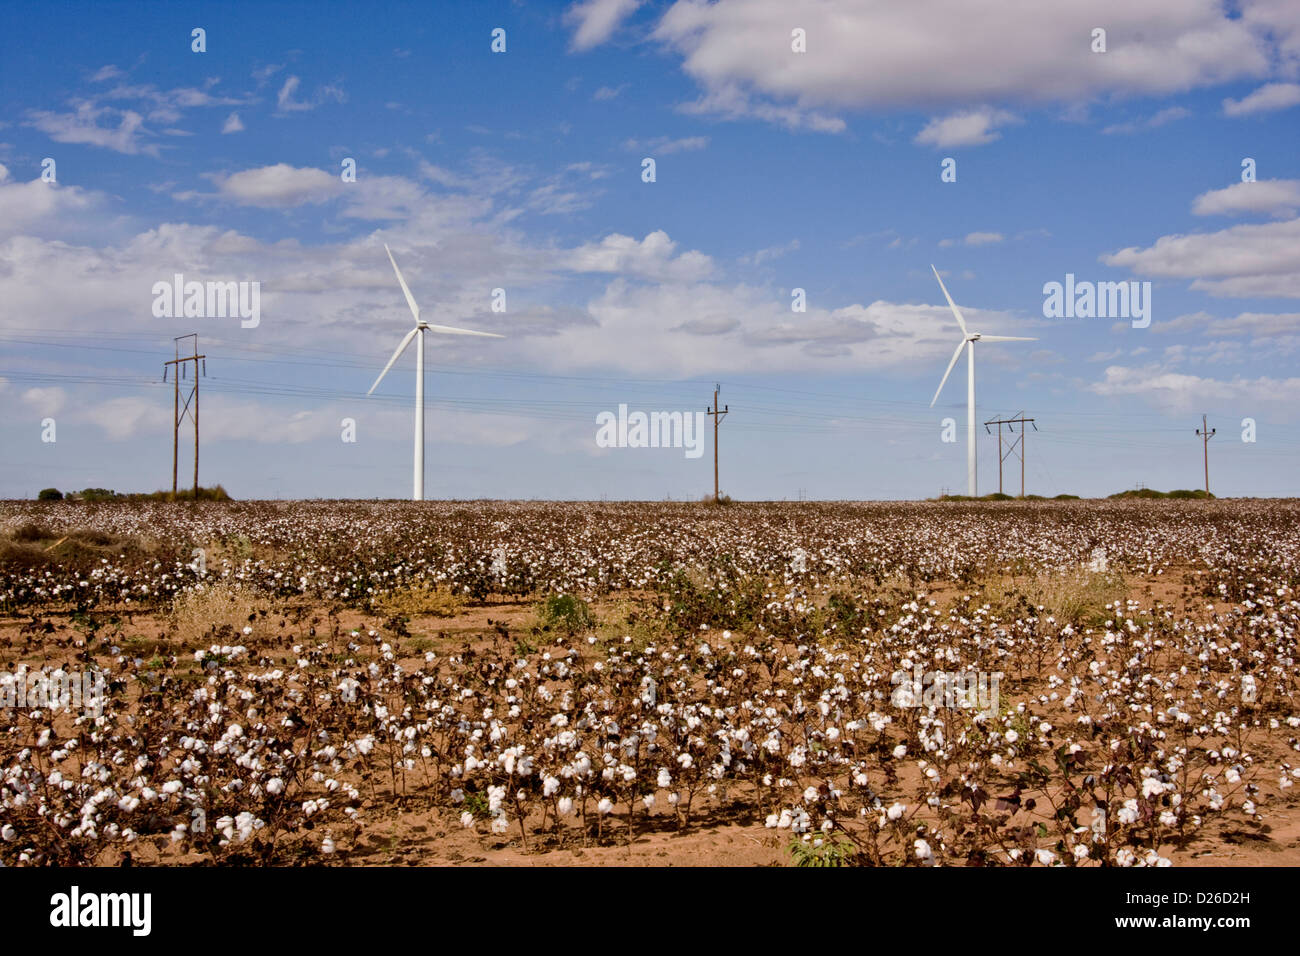 Wind generators and electrical transmission lines sit in a cotton field near Rosco, Texas, USA - Stock Image